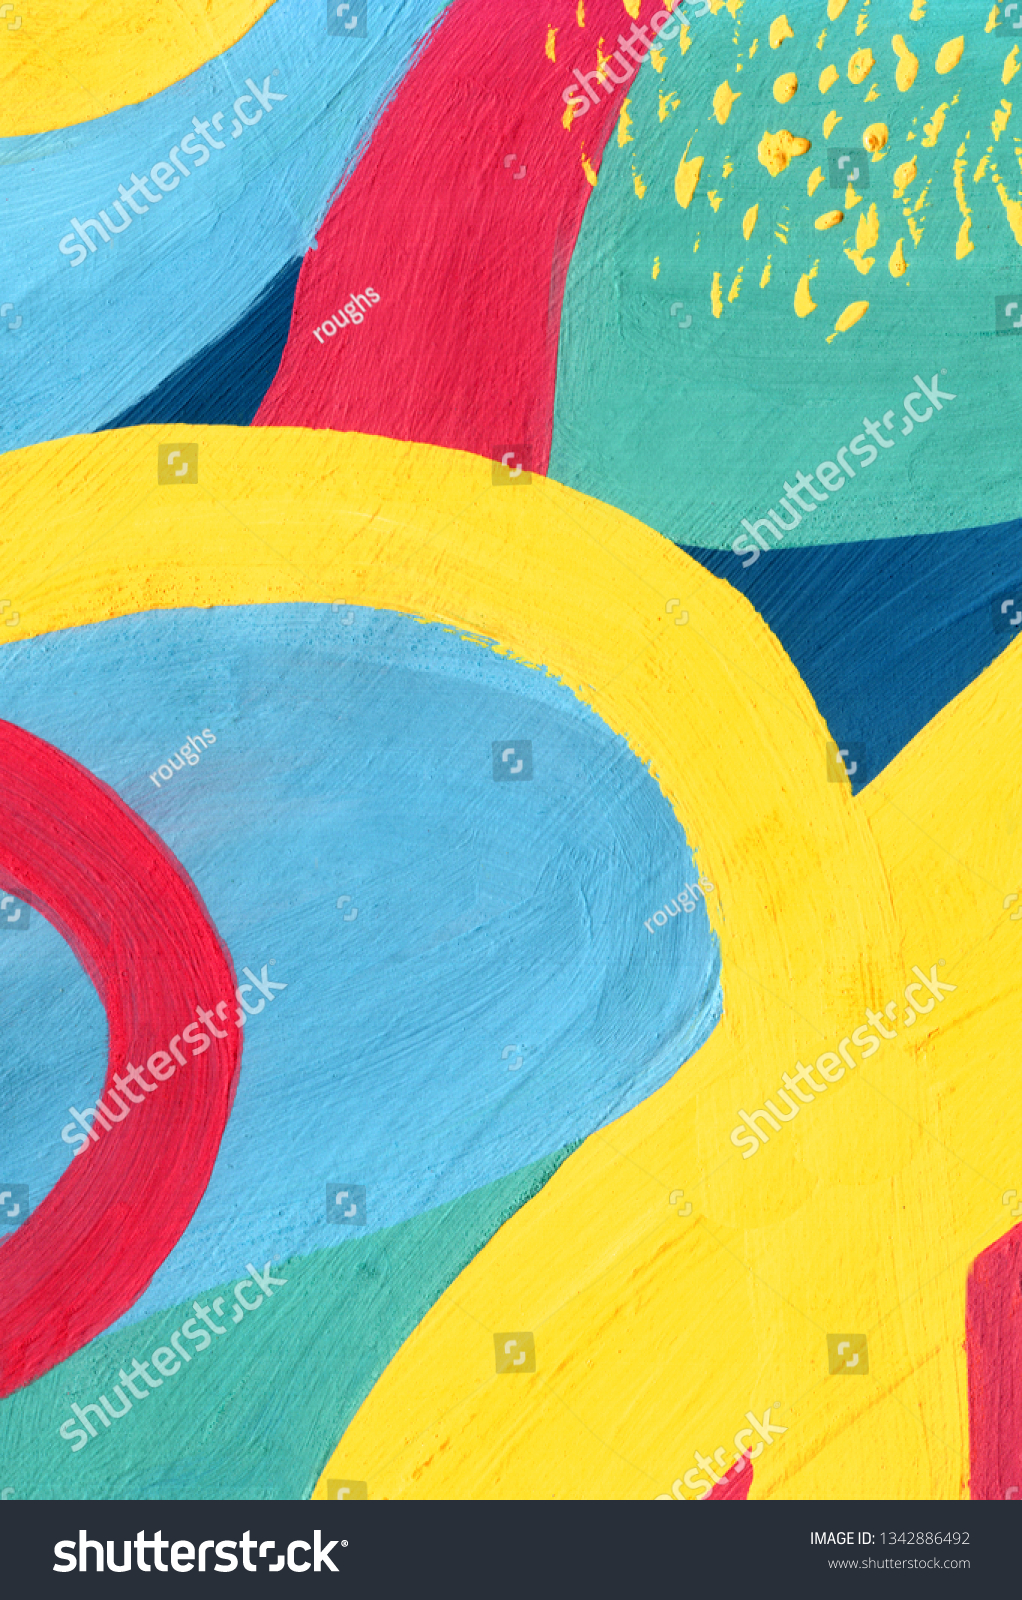 Bright Colours Painting Textured Abstract Art Painting Yellow Elements Stock Illustration